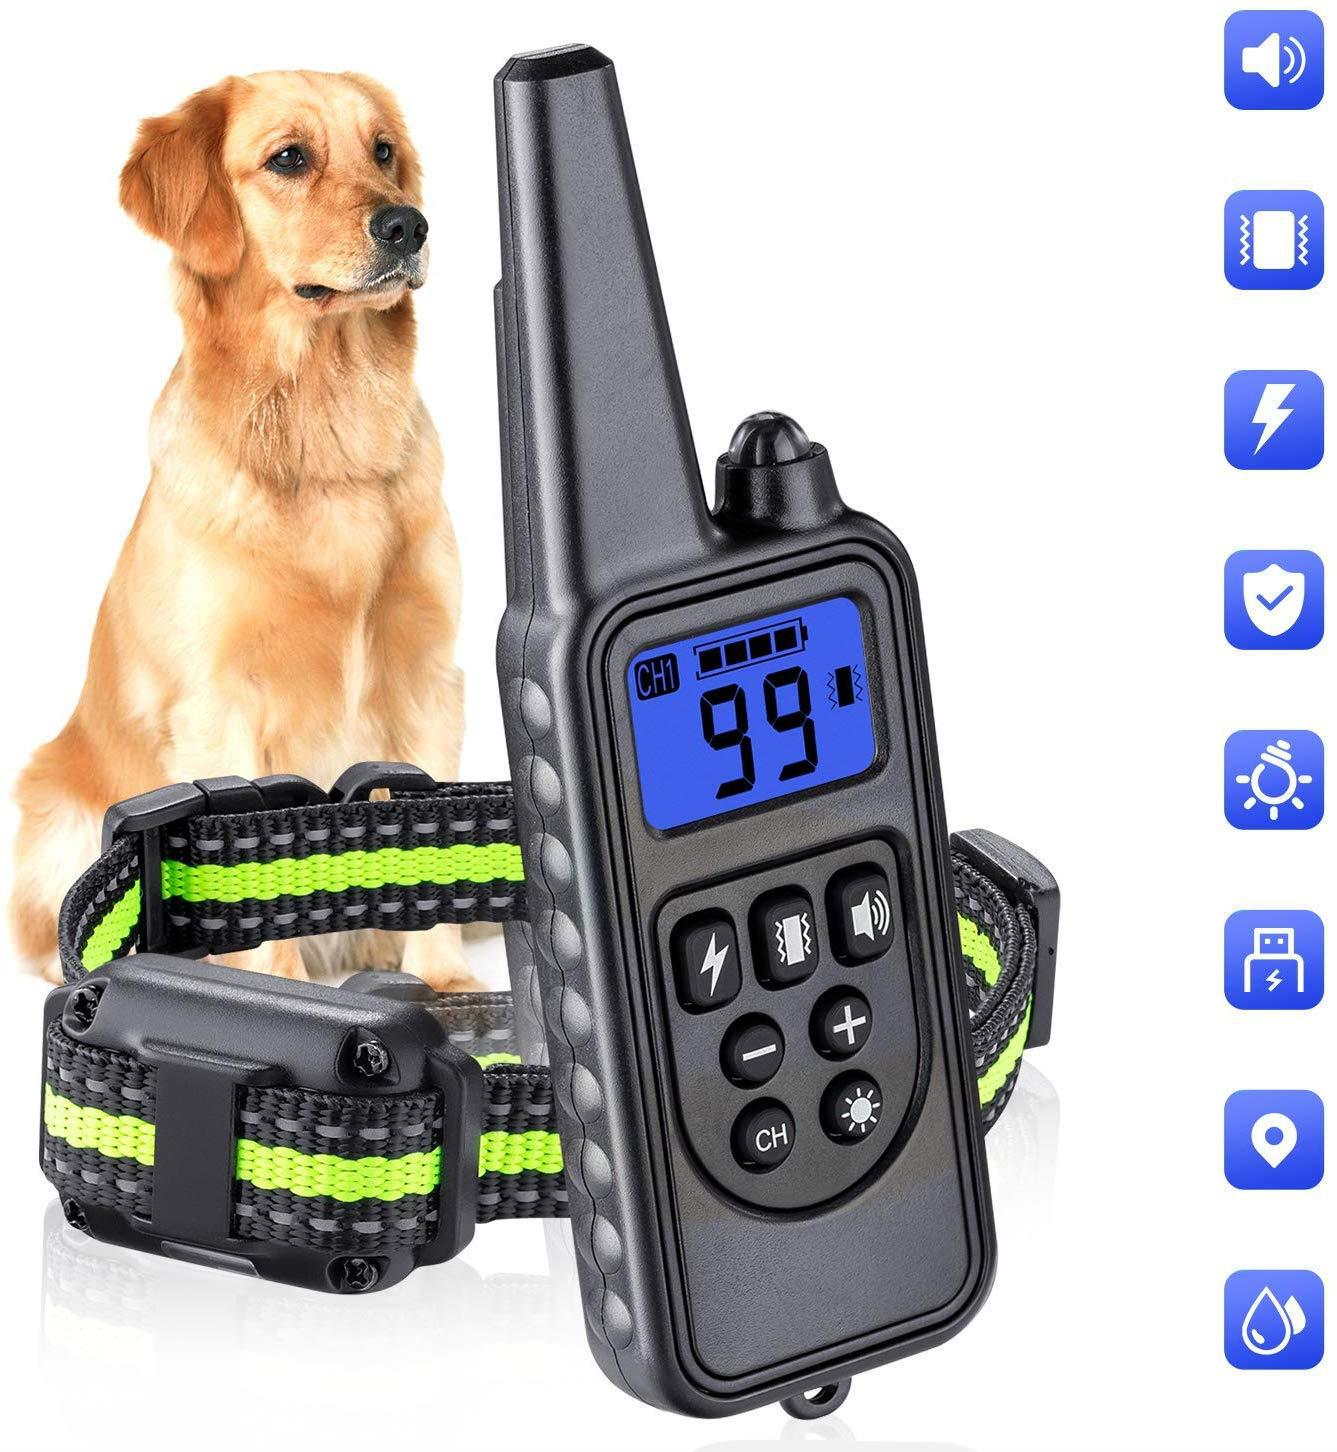 2020 New Style Nylon Dog Trainer Only Fei Vibration Electric Shock Collar Pet Supplies Training Hot Sales